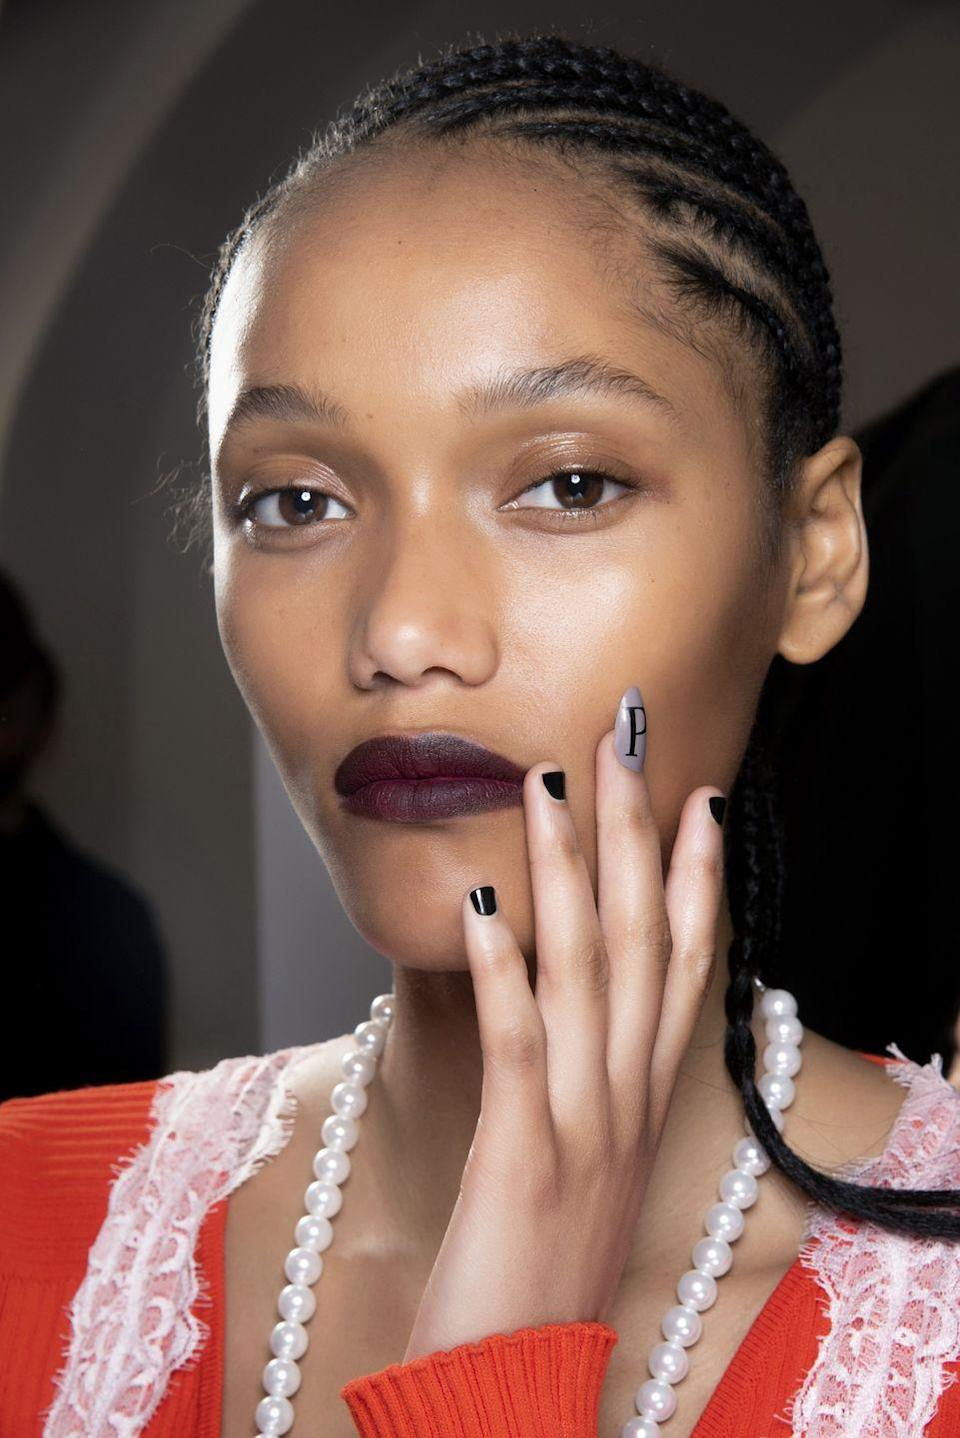 """<p>At Pucci, nails were accented with a single """"p"""" that was a more minimalist take on the always-cool logo nail trend. </p>"""